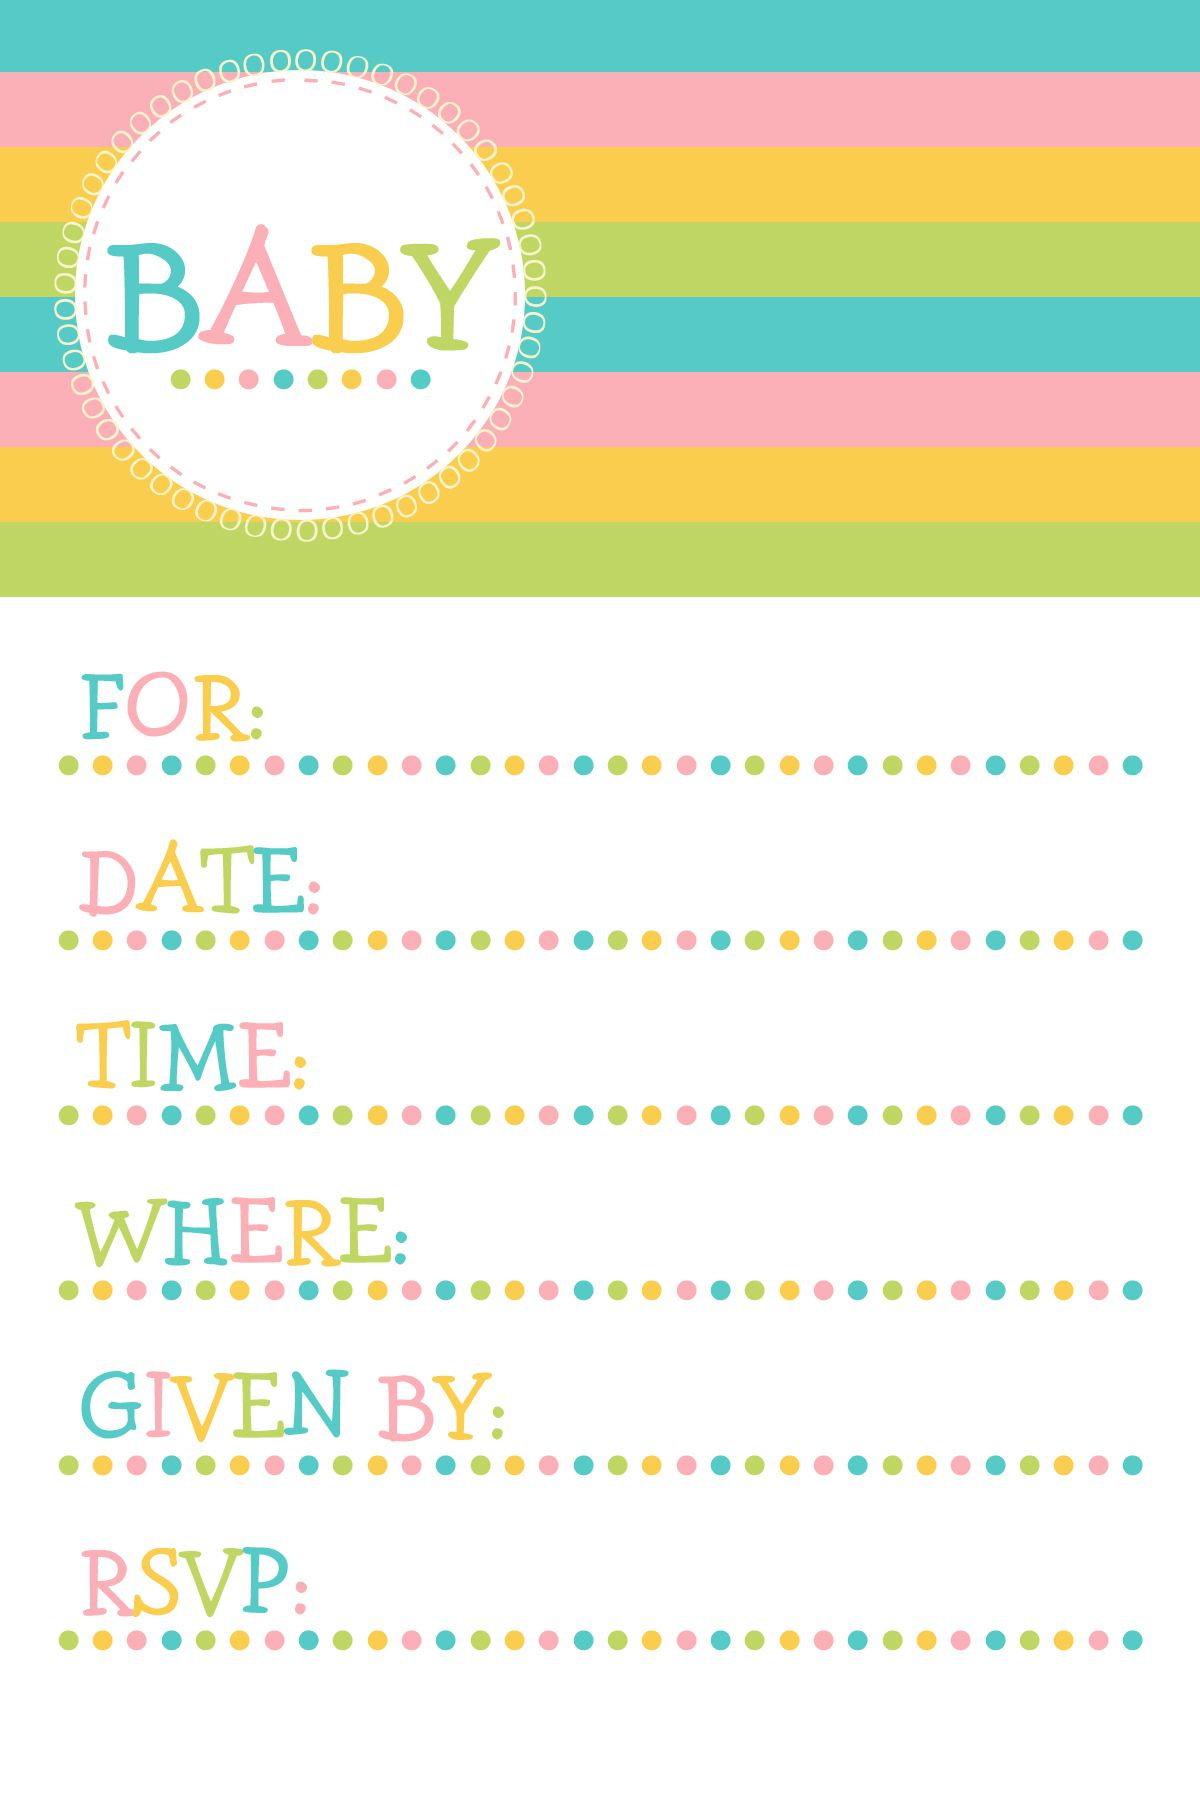 25 Adorable Free Printable Baby Shower Invitations - Free Printable Baby Shower Invitations Templates For Boys